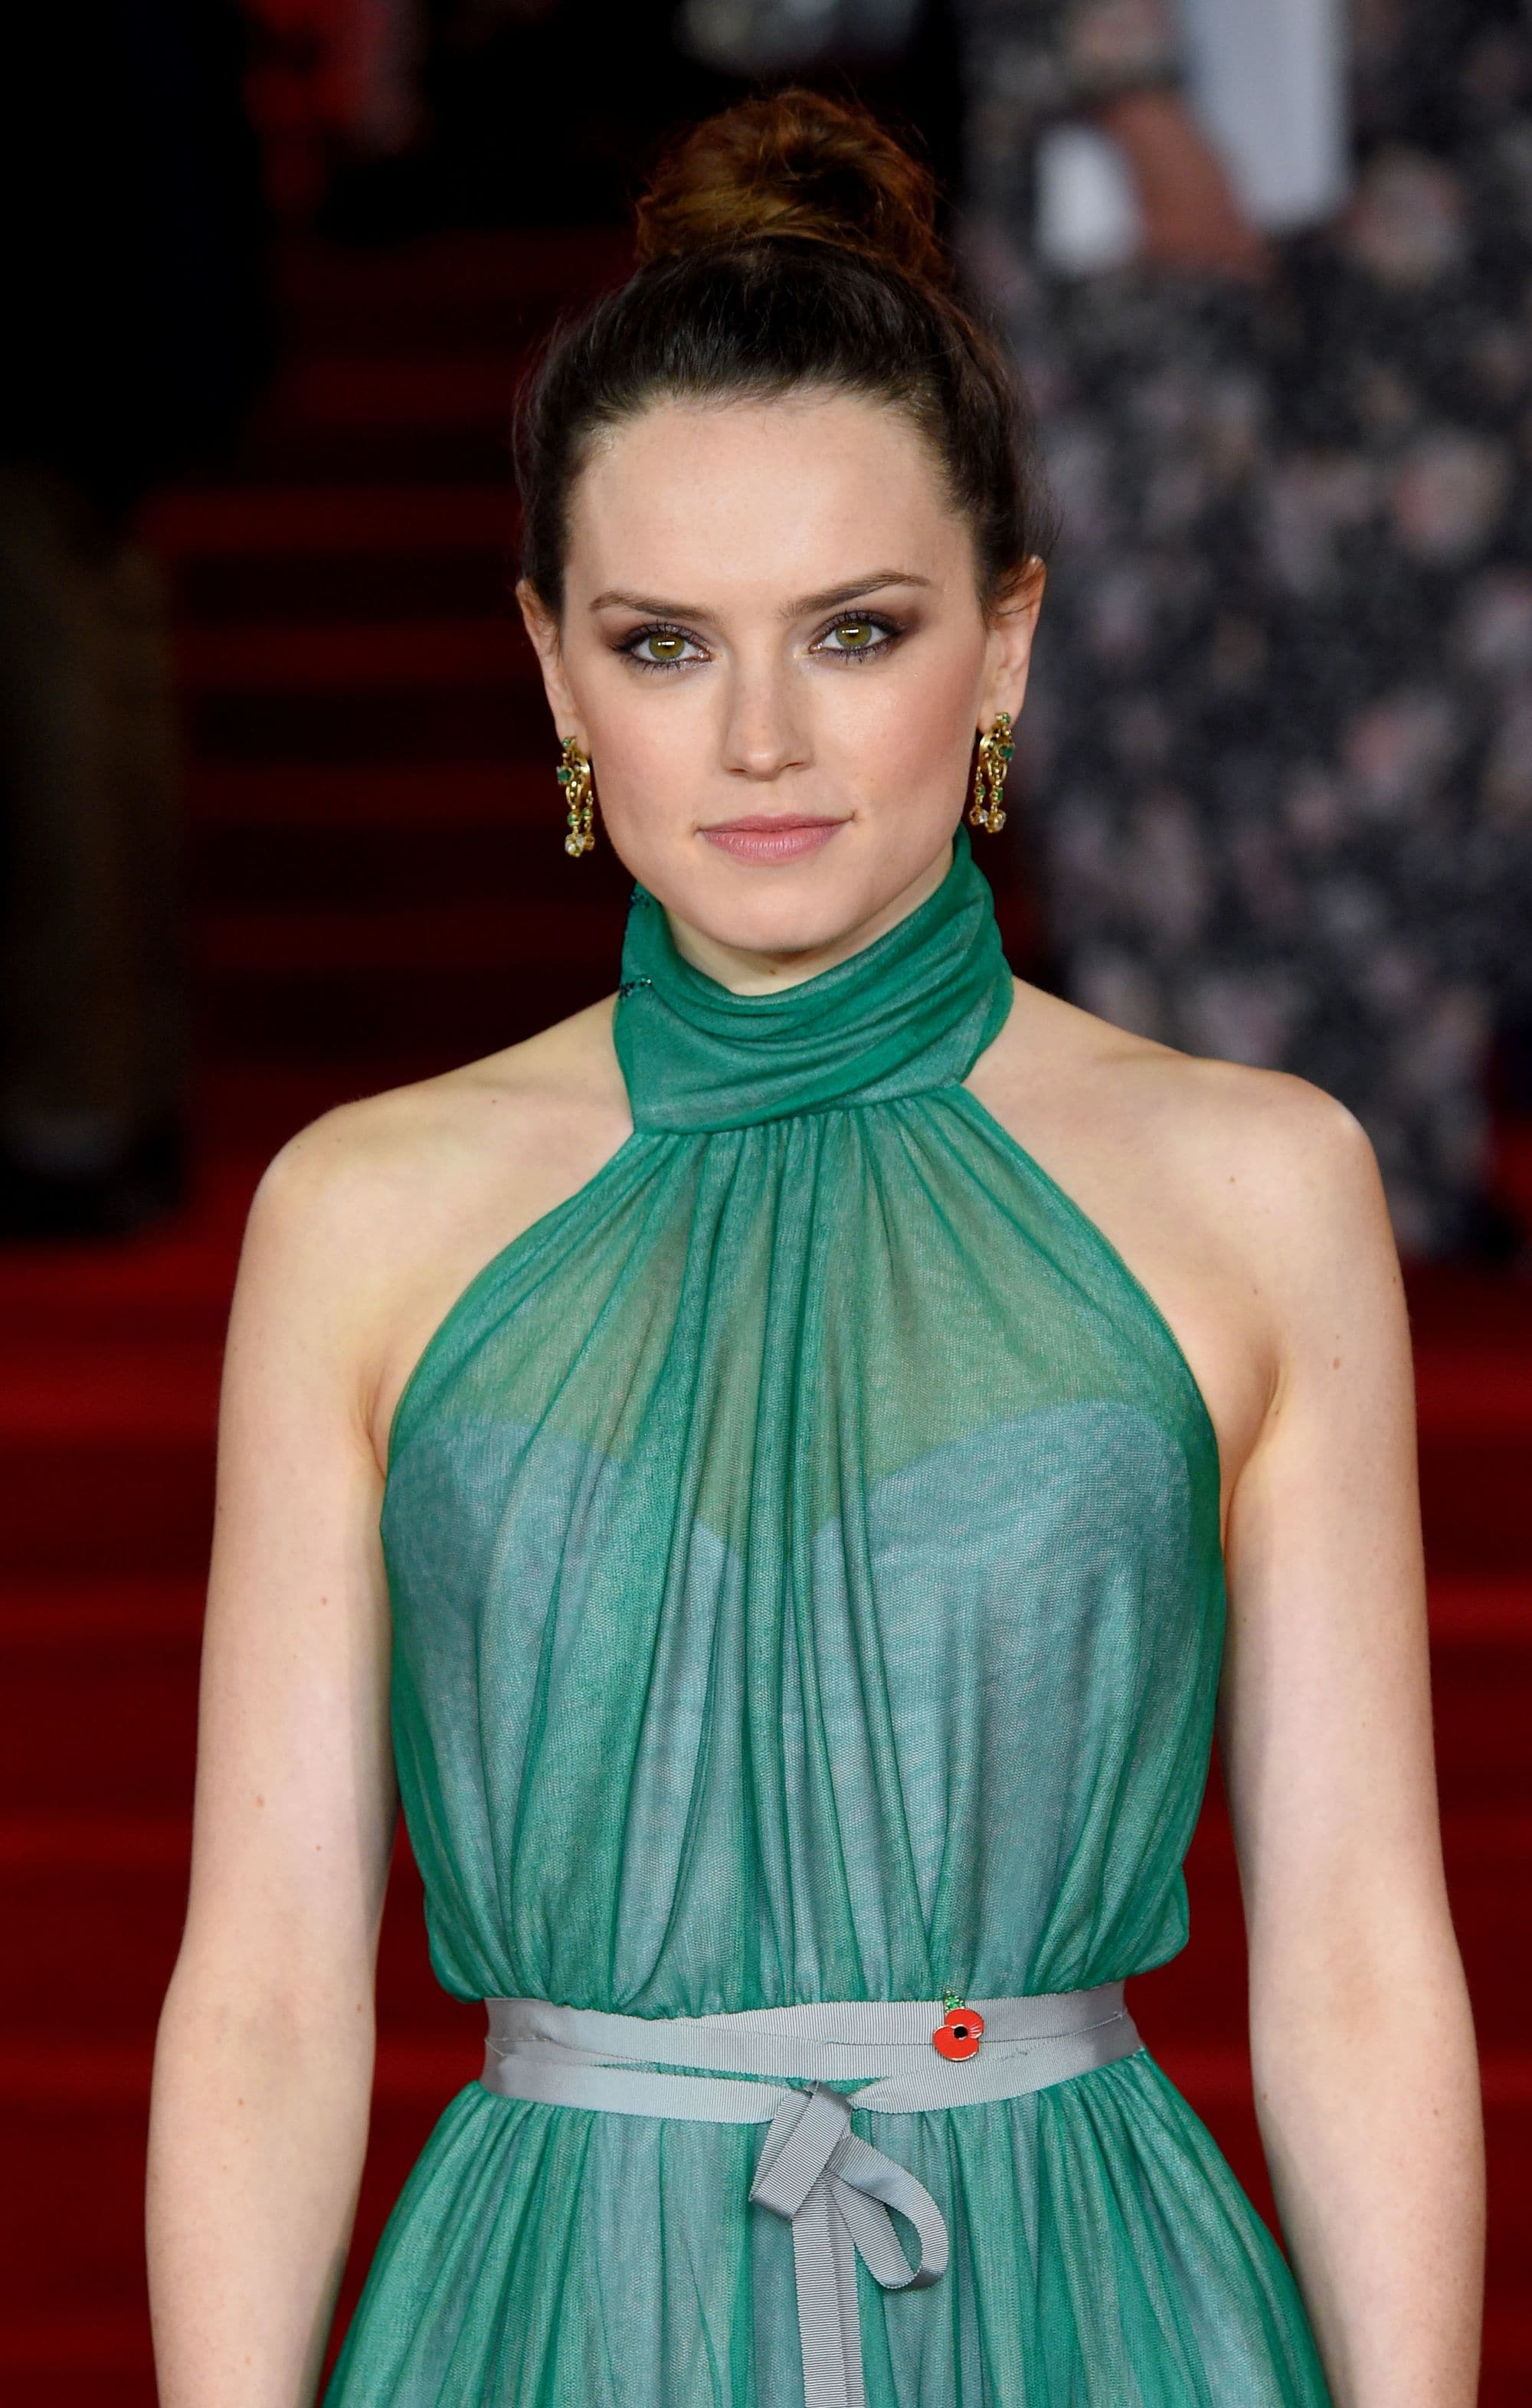 Daisy Ridley Gallery How To Get Rey Star Wars Hair